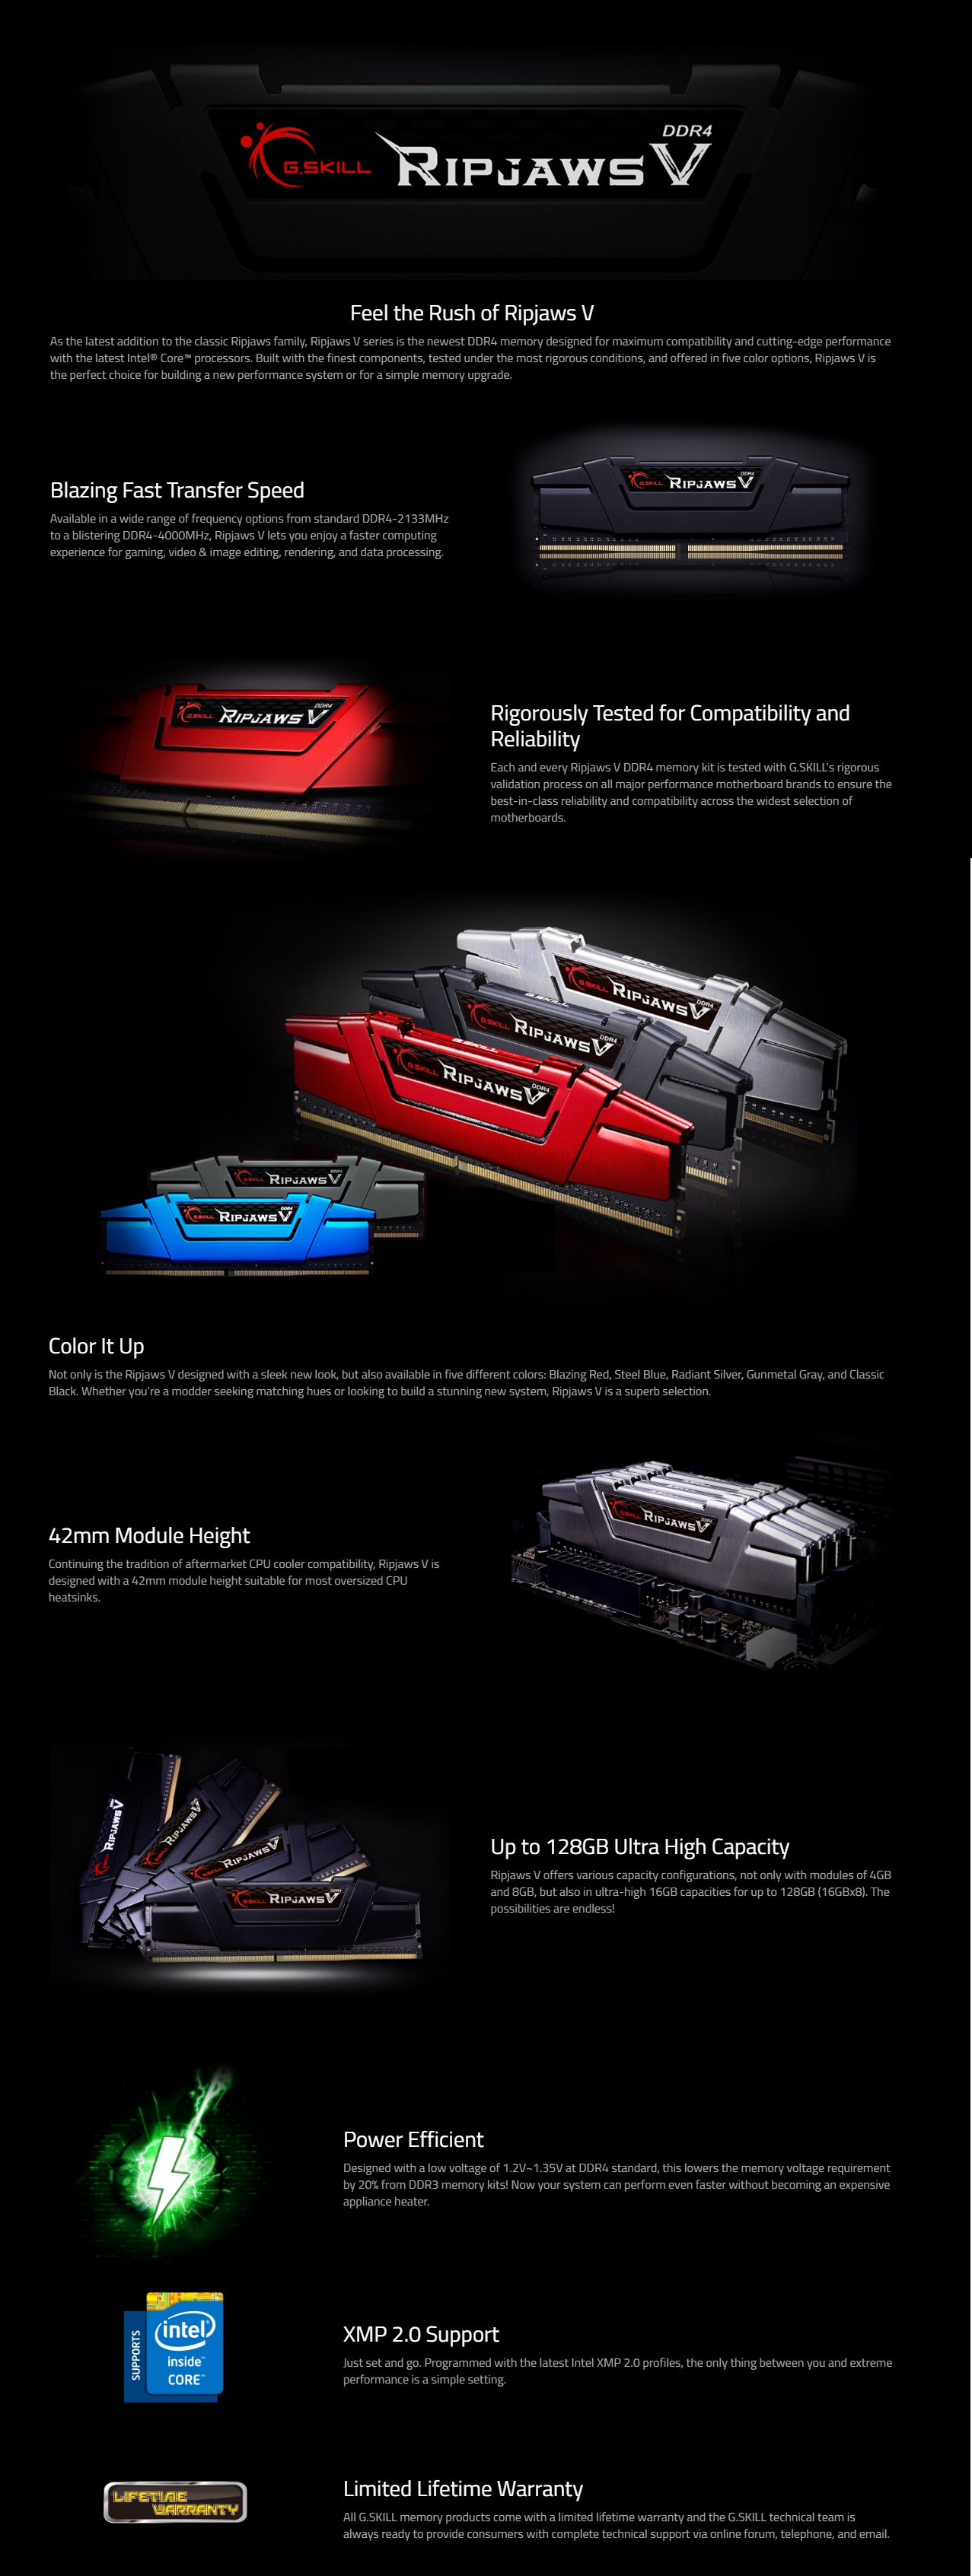 A large marketing image providing additional information about the product G.Skill 128GB Kit (4x32GB) DDR4 Ripjaws V C16 3200Mhz - Additional alt info not provided